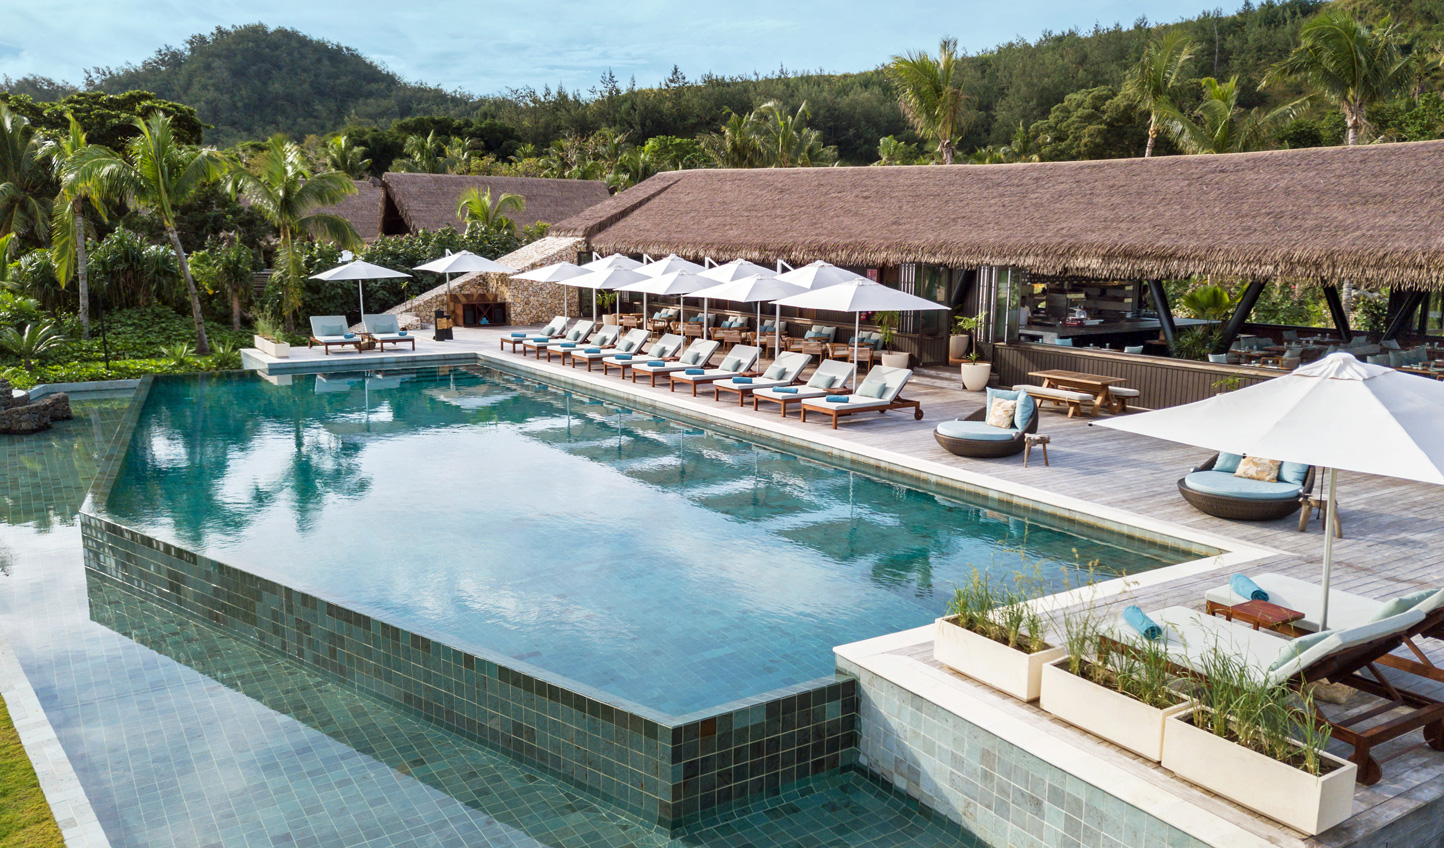 Take some time off from adventuring through the islands to relax by the pool